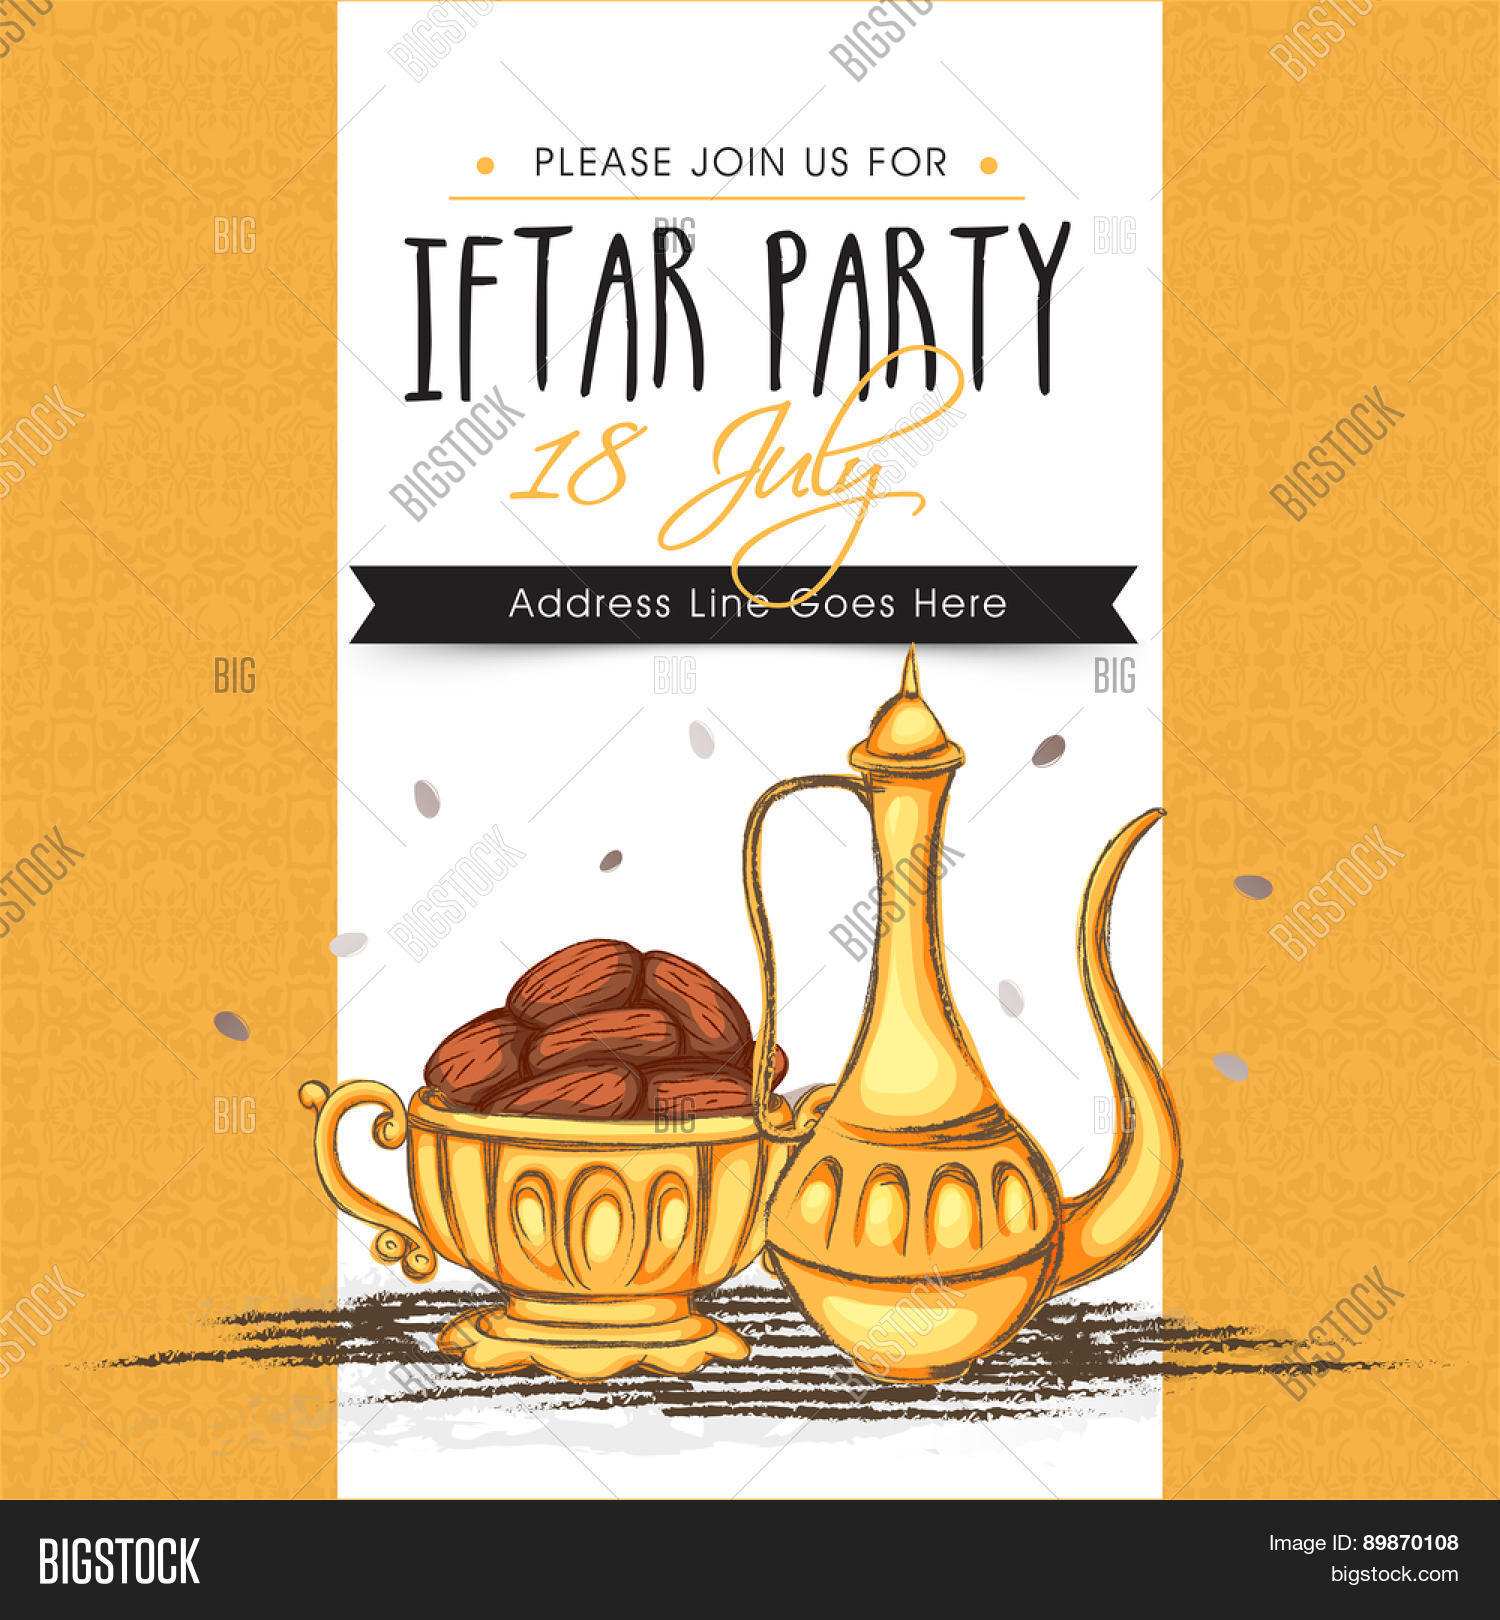 Creative invitation card dates vector photo bigstock creative invitation card with dates for muslim community festival ramadan kareem iftar party celebration stopboris Images